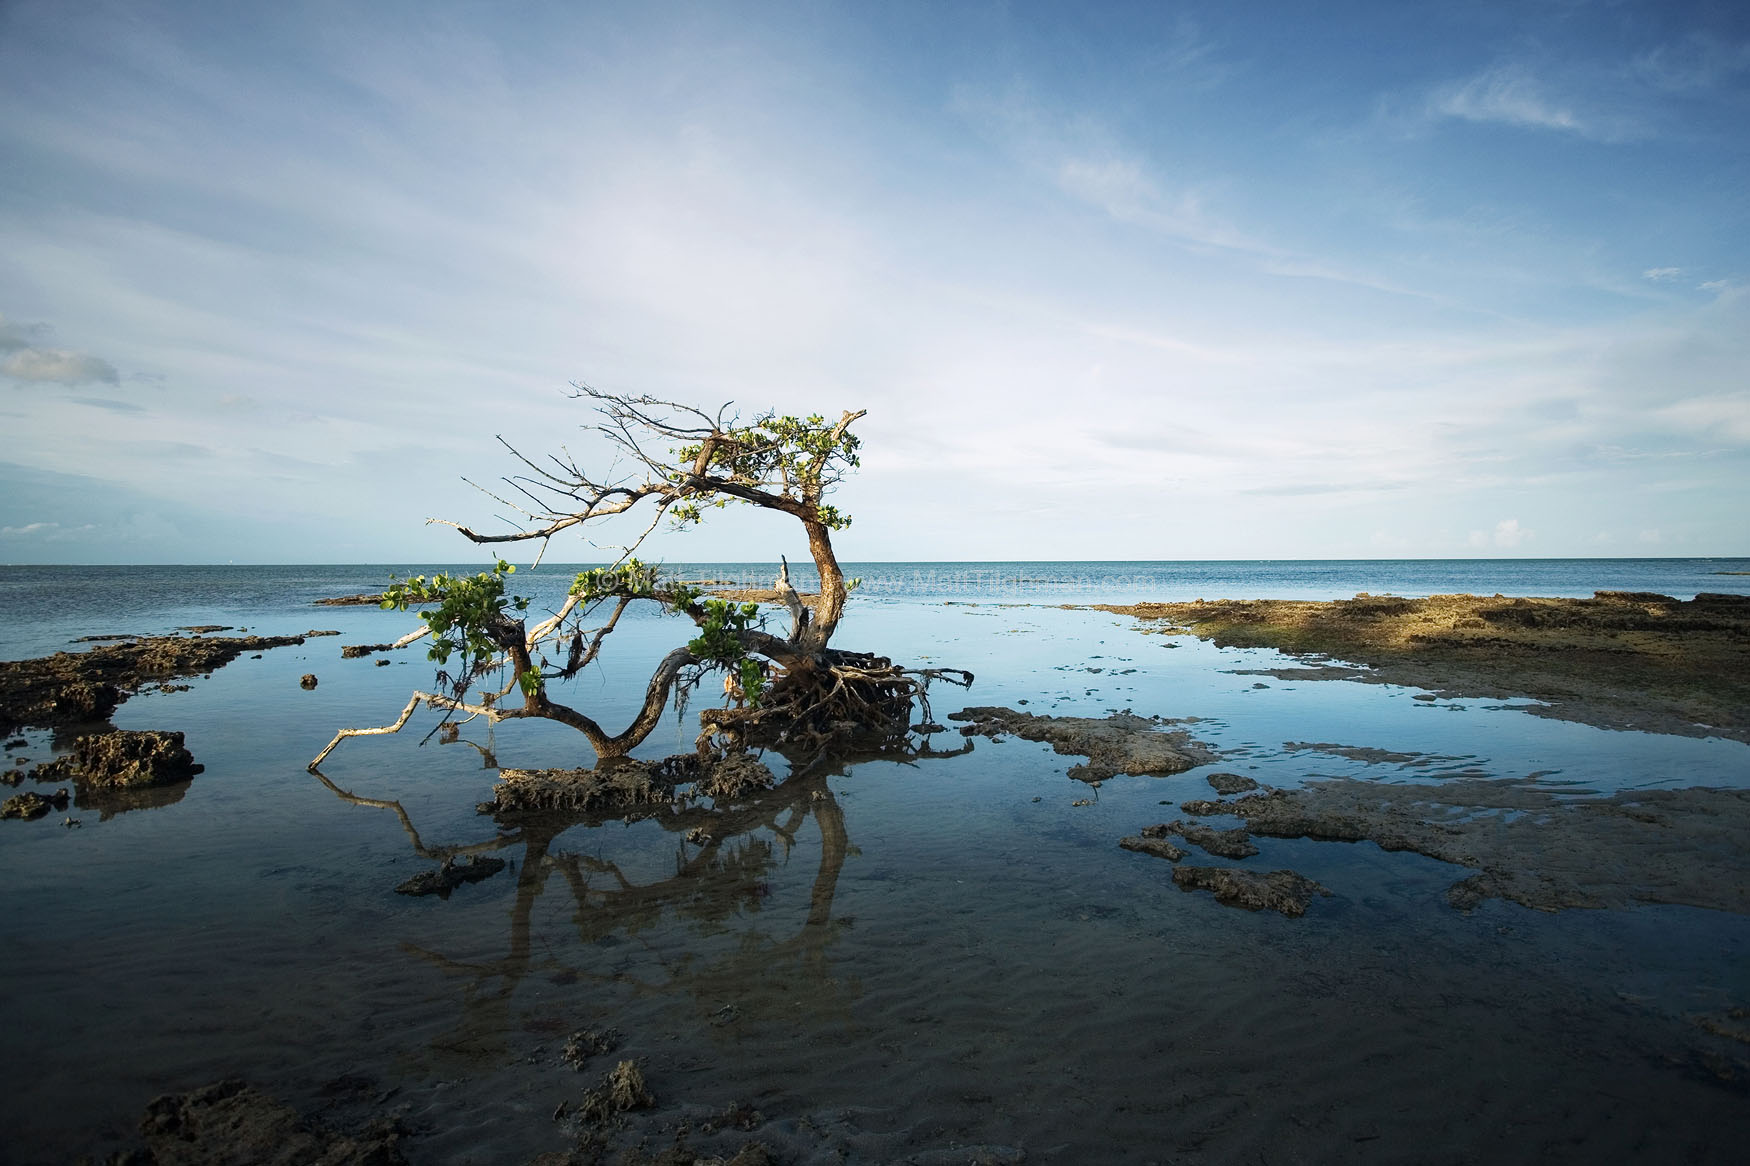 Fine art stock photograph of gnarled old mangrove tree in South Florida. The changing nature of barrier islands' coastline will doom this tree to becoming driftwood soon.